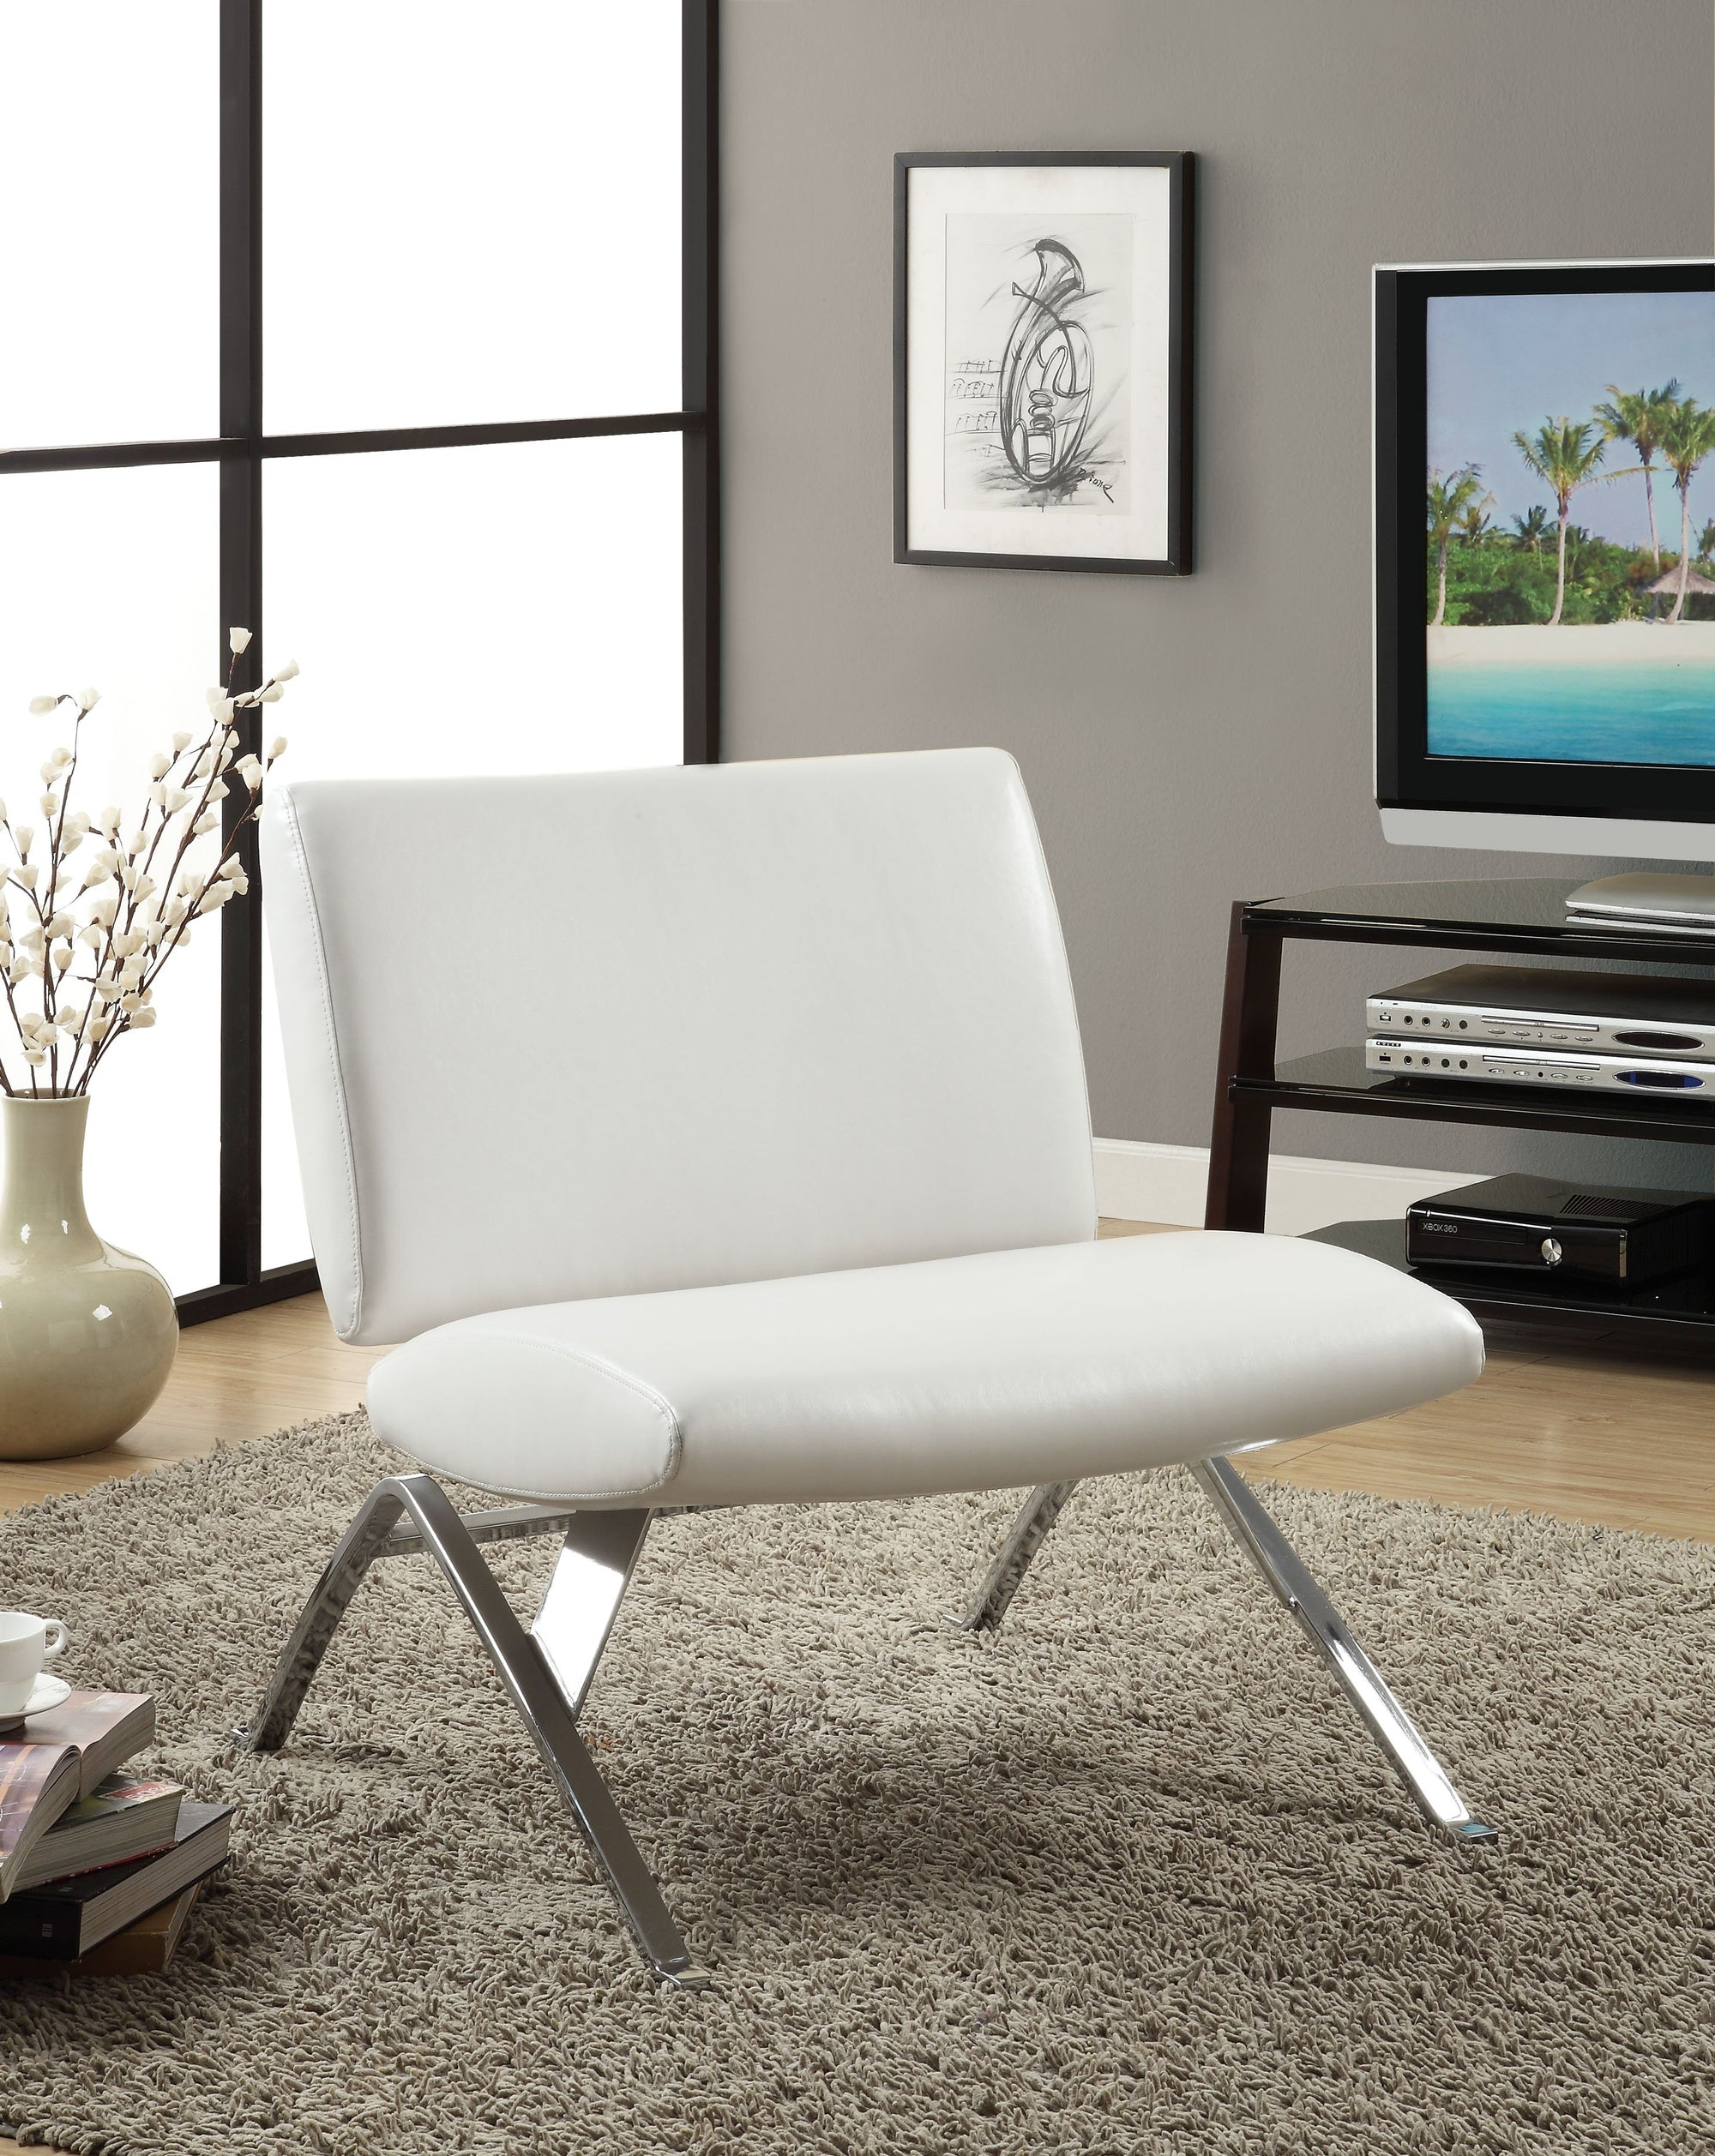 Superb Accent Chair White Leather Look Fabric Chrome Base Machost Co Dining Chair Design Ideas Machostcouk